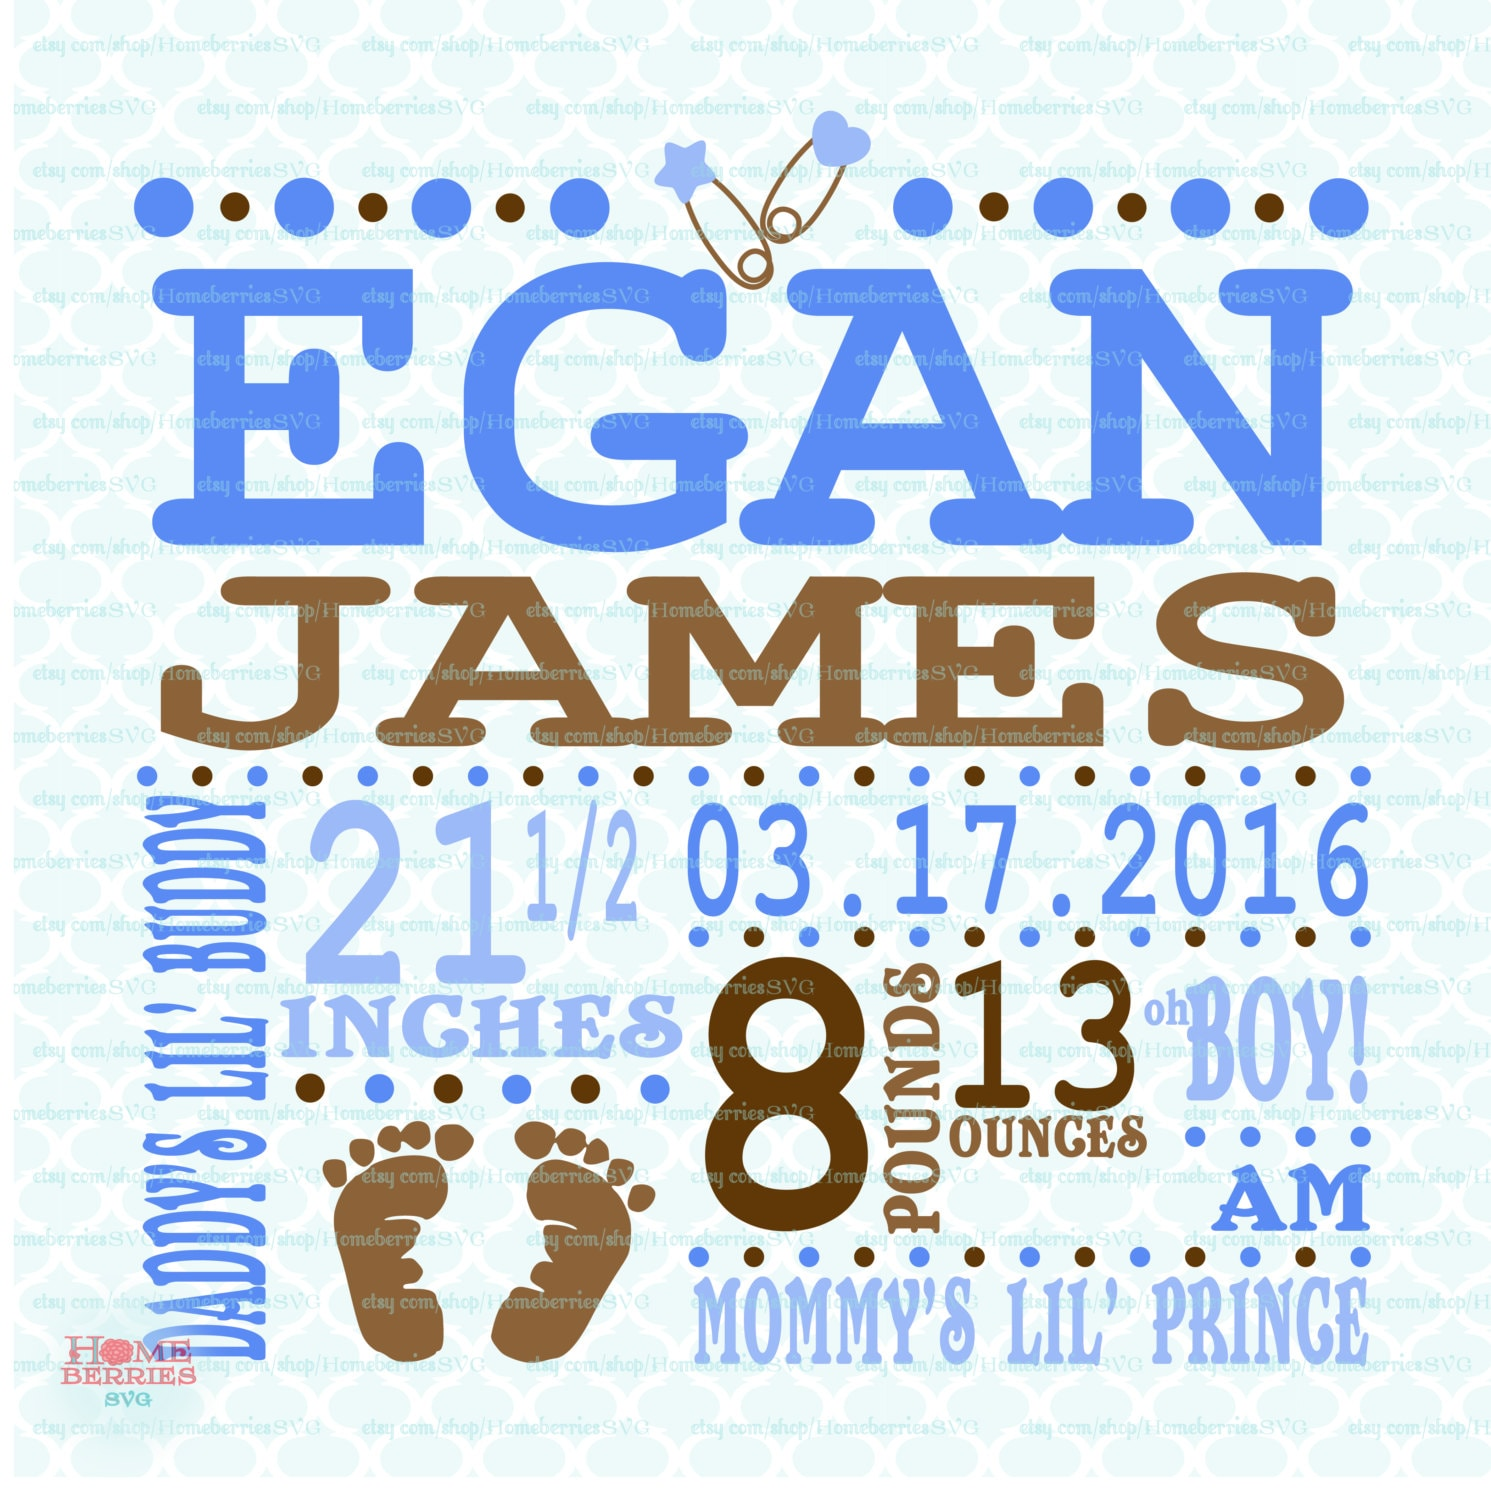 birth announcement template svg birth svg baby svg announcement svg birth facts svg birth stats oh boy svg files svg dxf eps jpg png